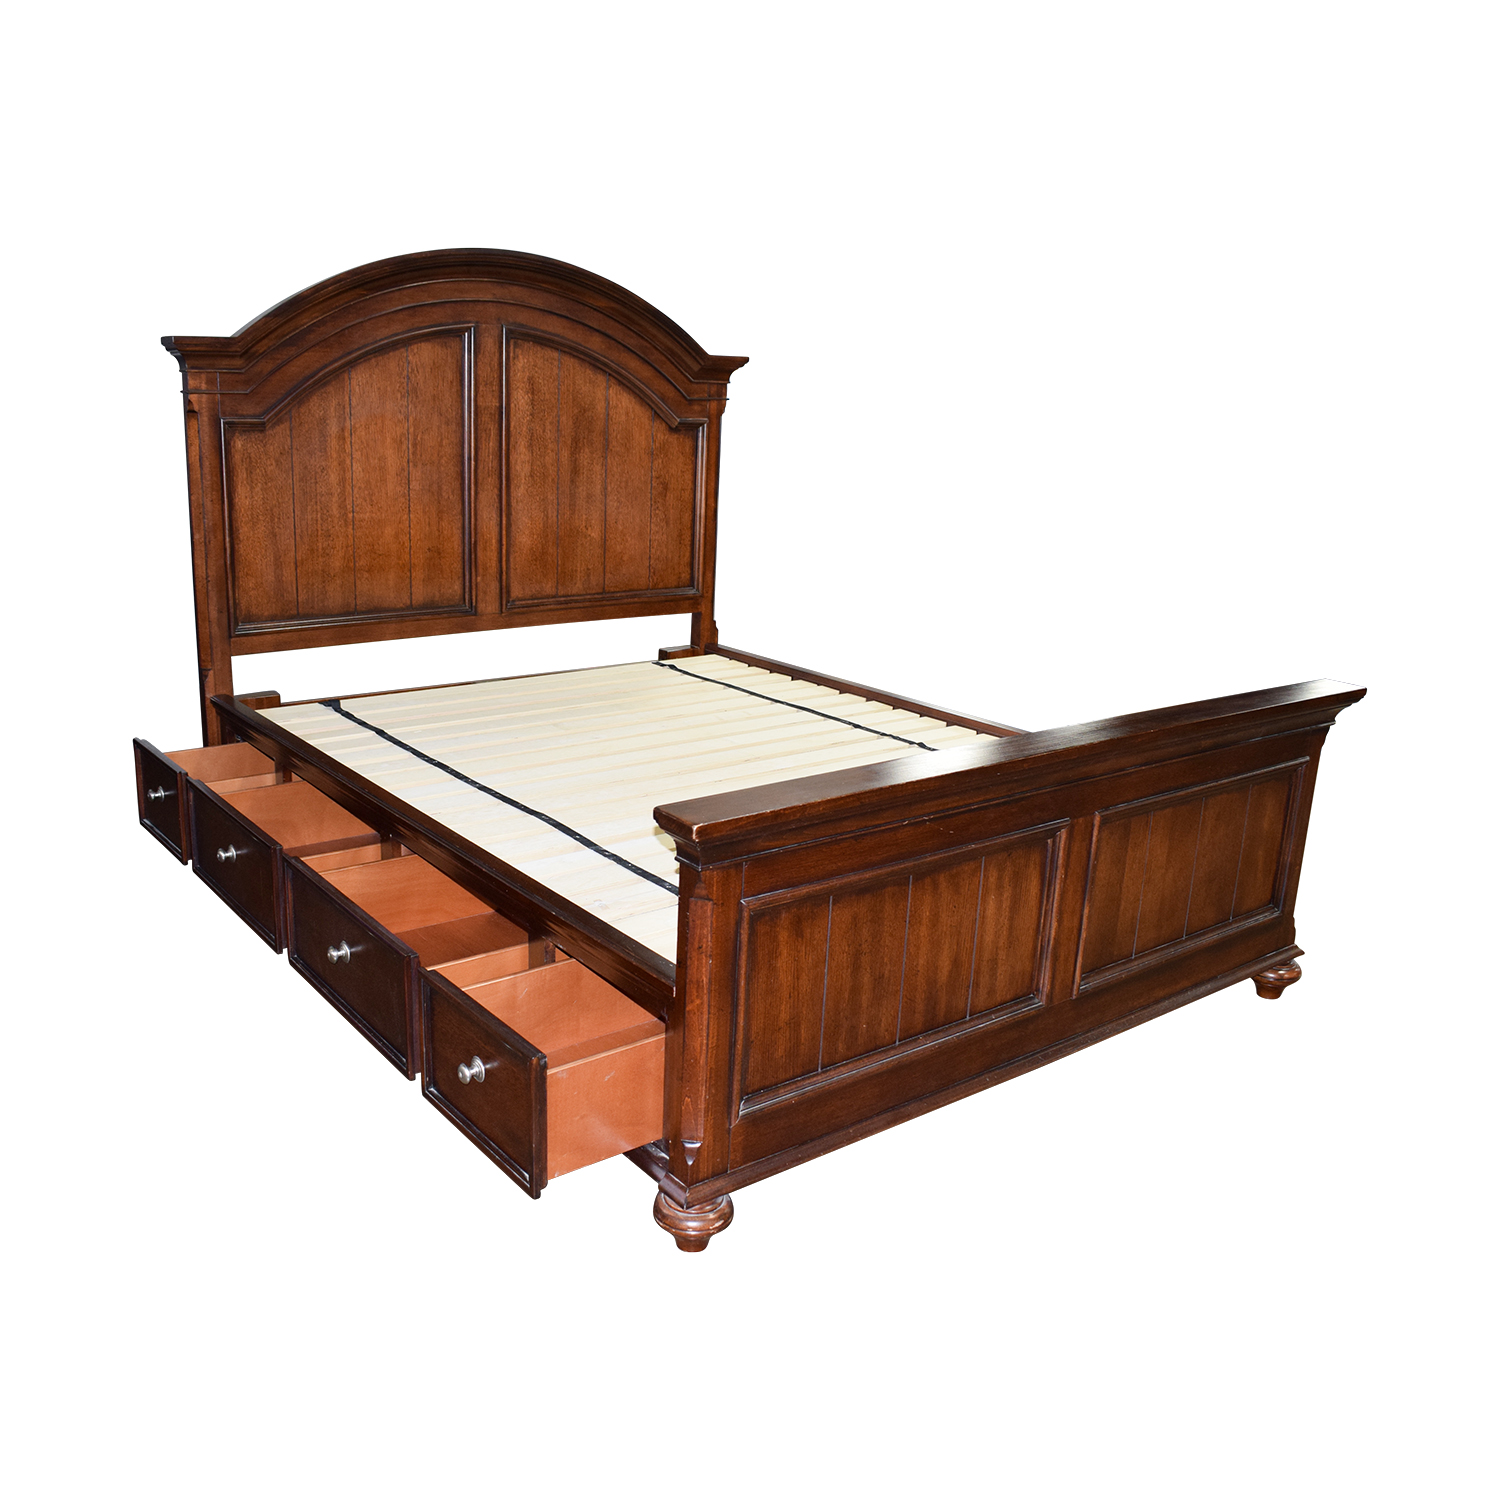 88 off raymour flanigan raymour flanigan canyon 16930 | buy raymour and flanigan canyon creek queen storage platform bed